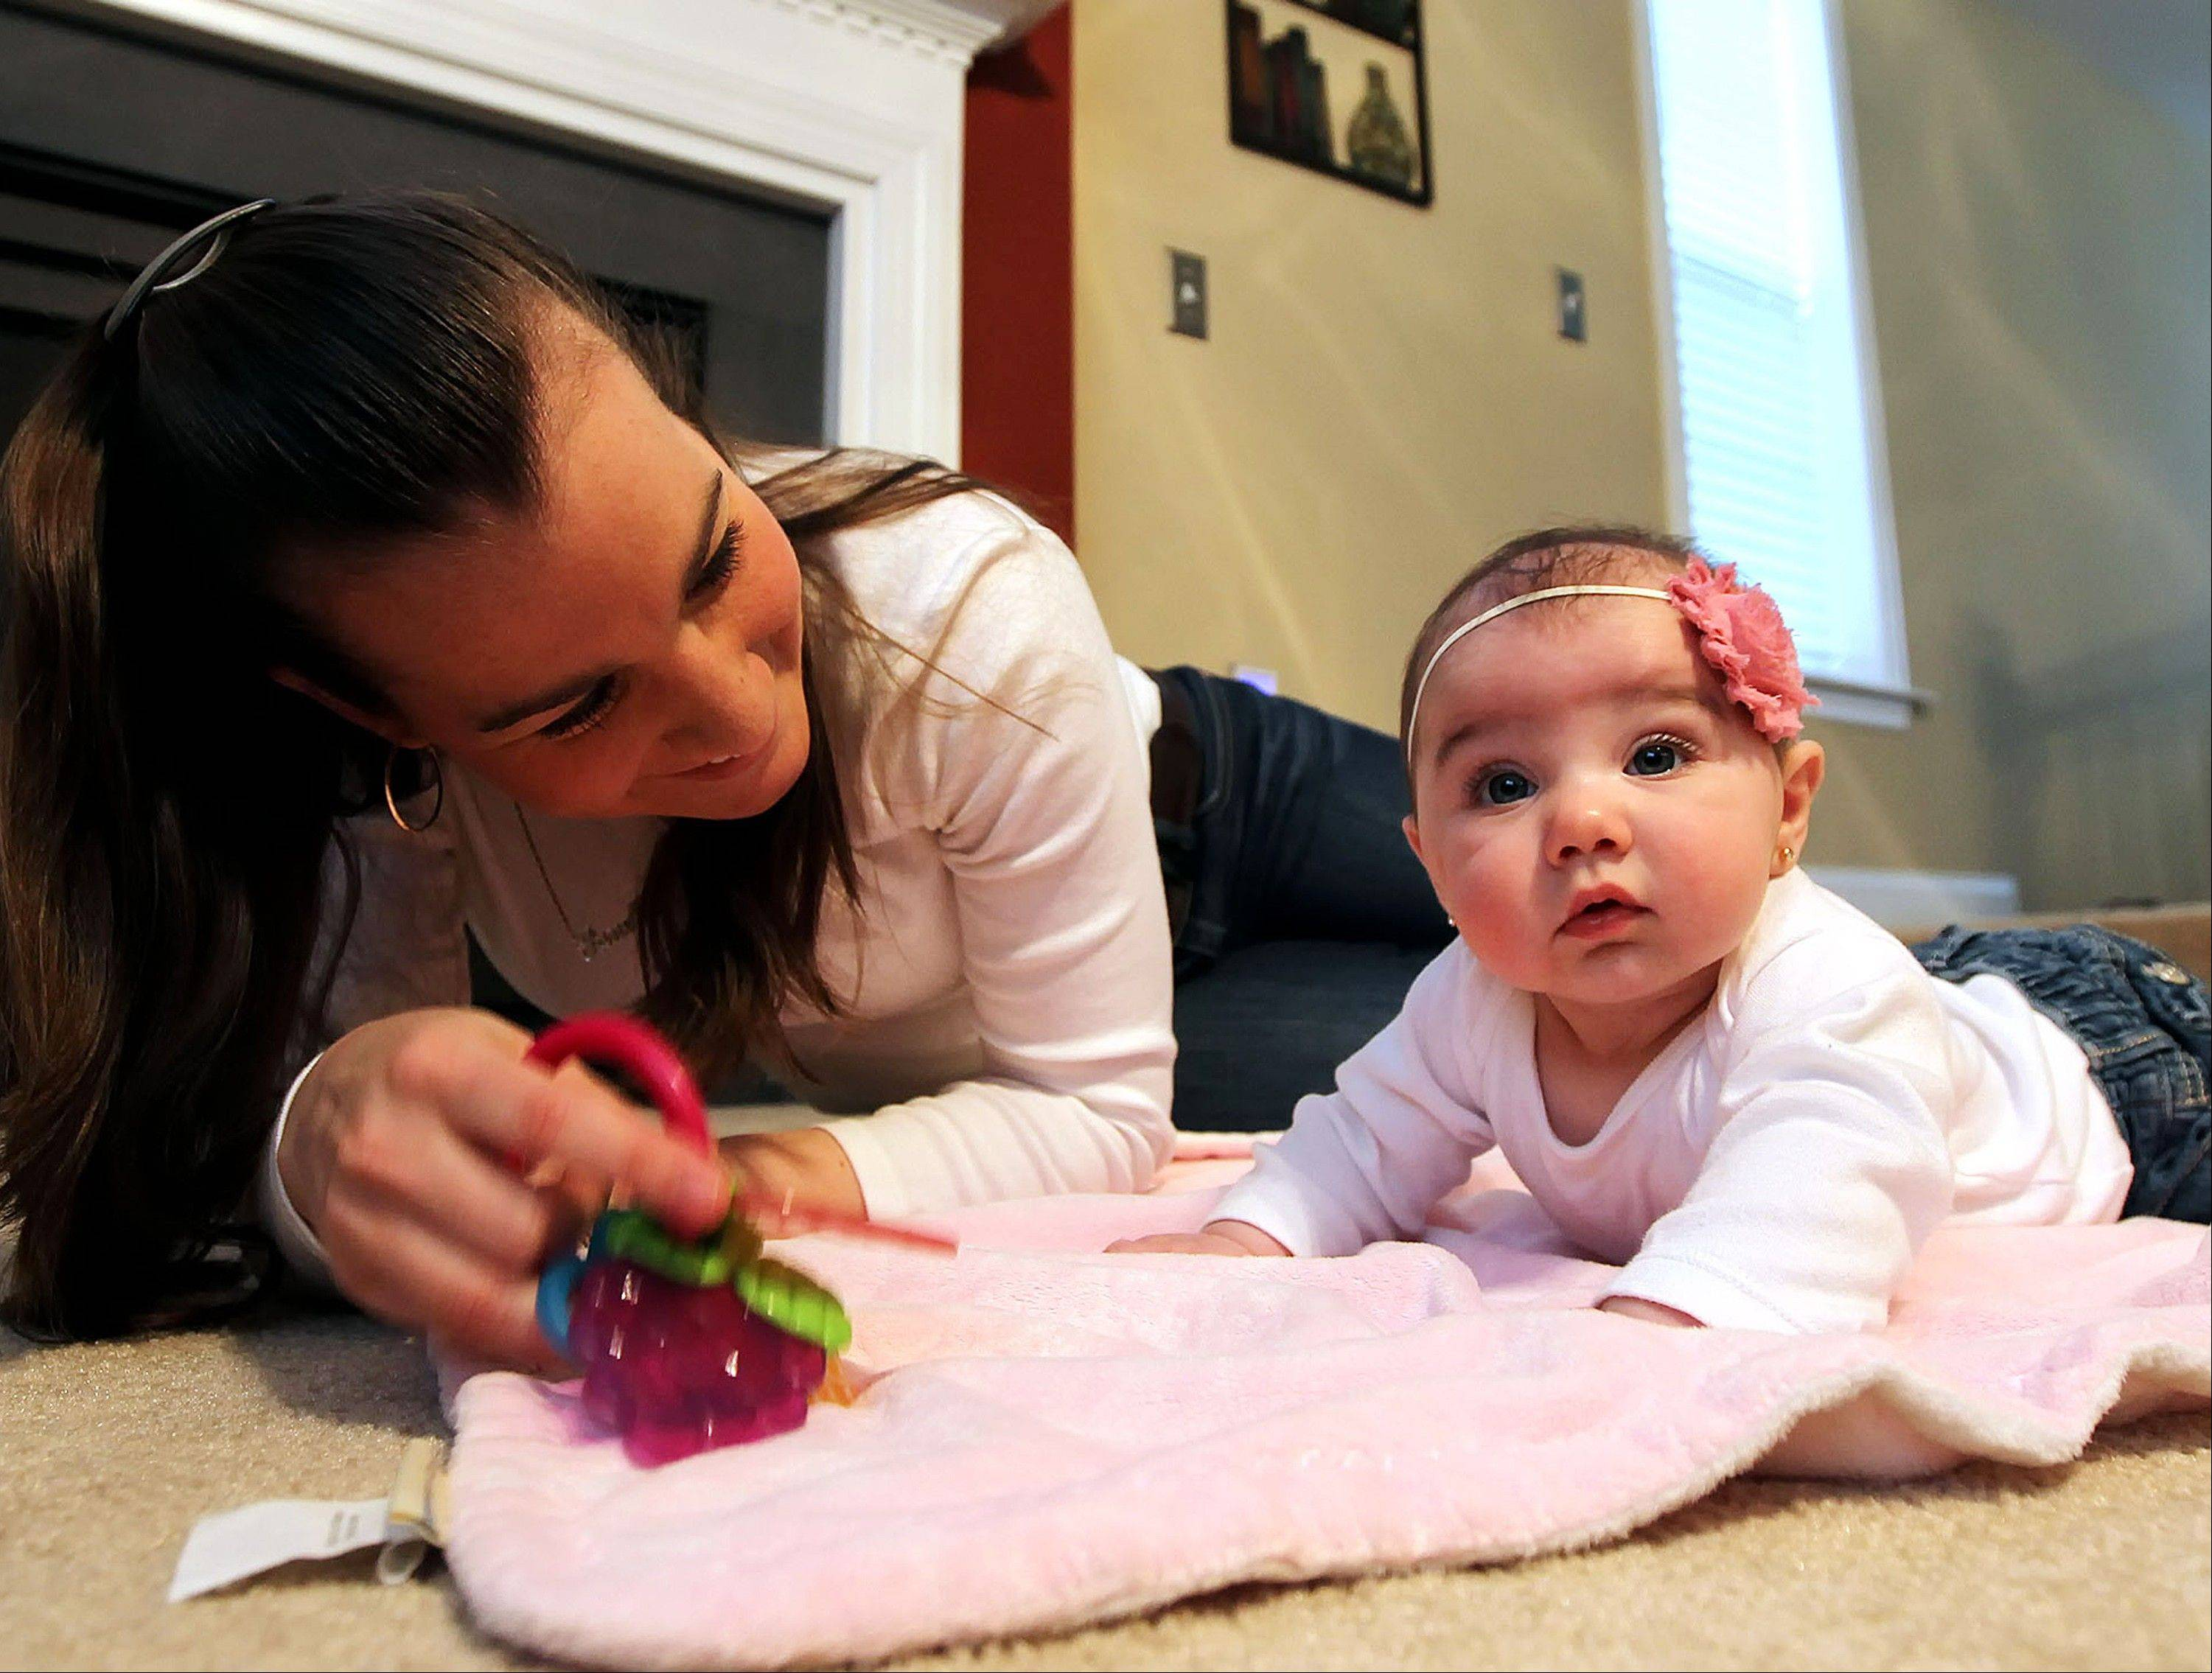 Janelle Valore plays with her daughter, Alena Valore, 5 months, who has colic, at their home in Mt. Joy, Pa. The distressing nonstop crying of colic in babies is often blamed on tummy trouble. But now a new study says the problem could be linked with migraine headaches in at least some infants.